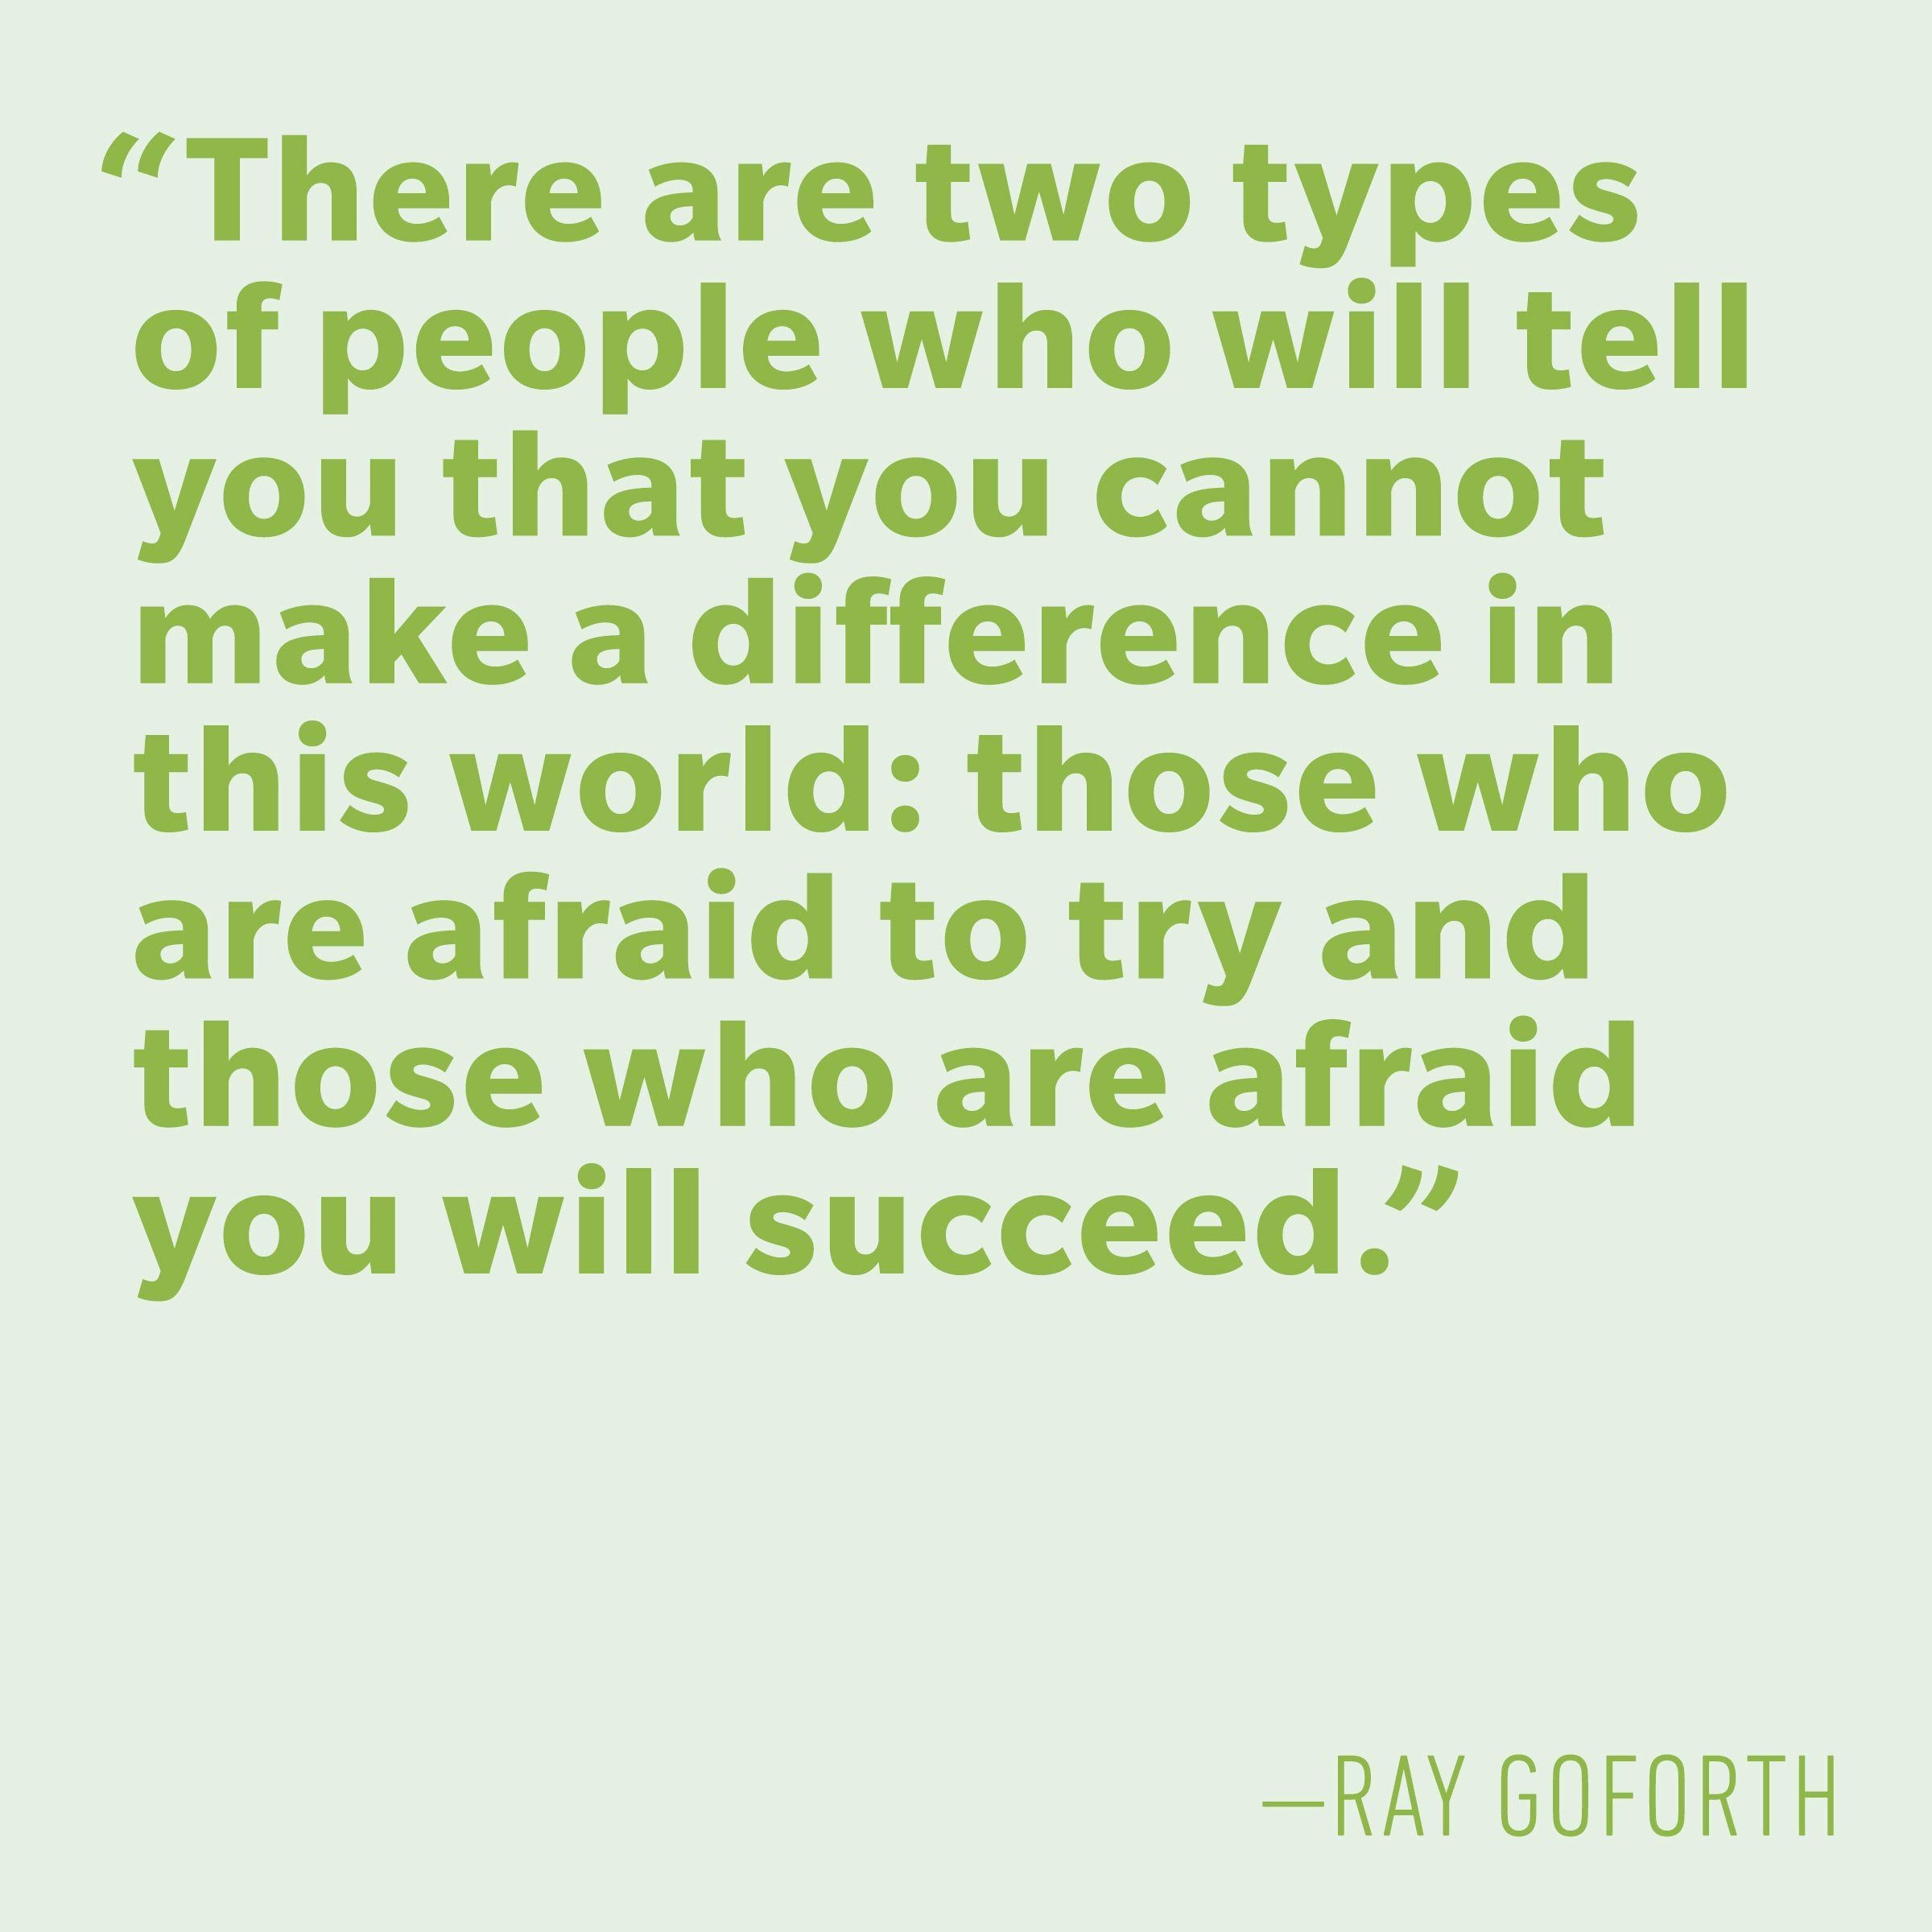 Motivational quotes - Ray Goforth